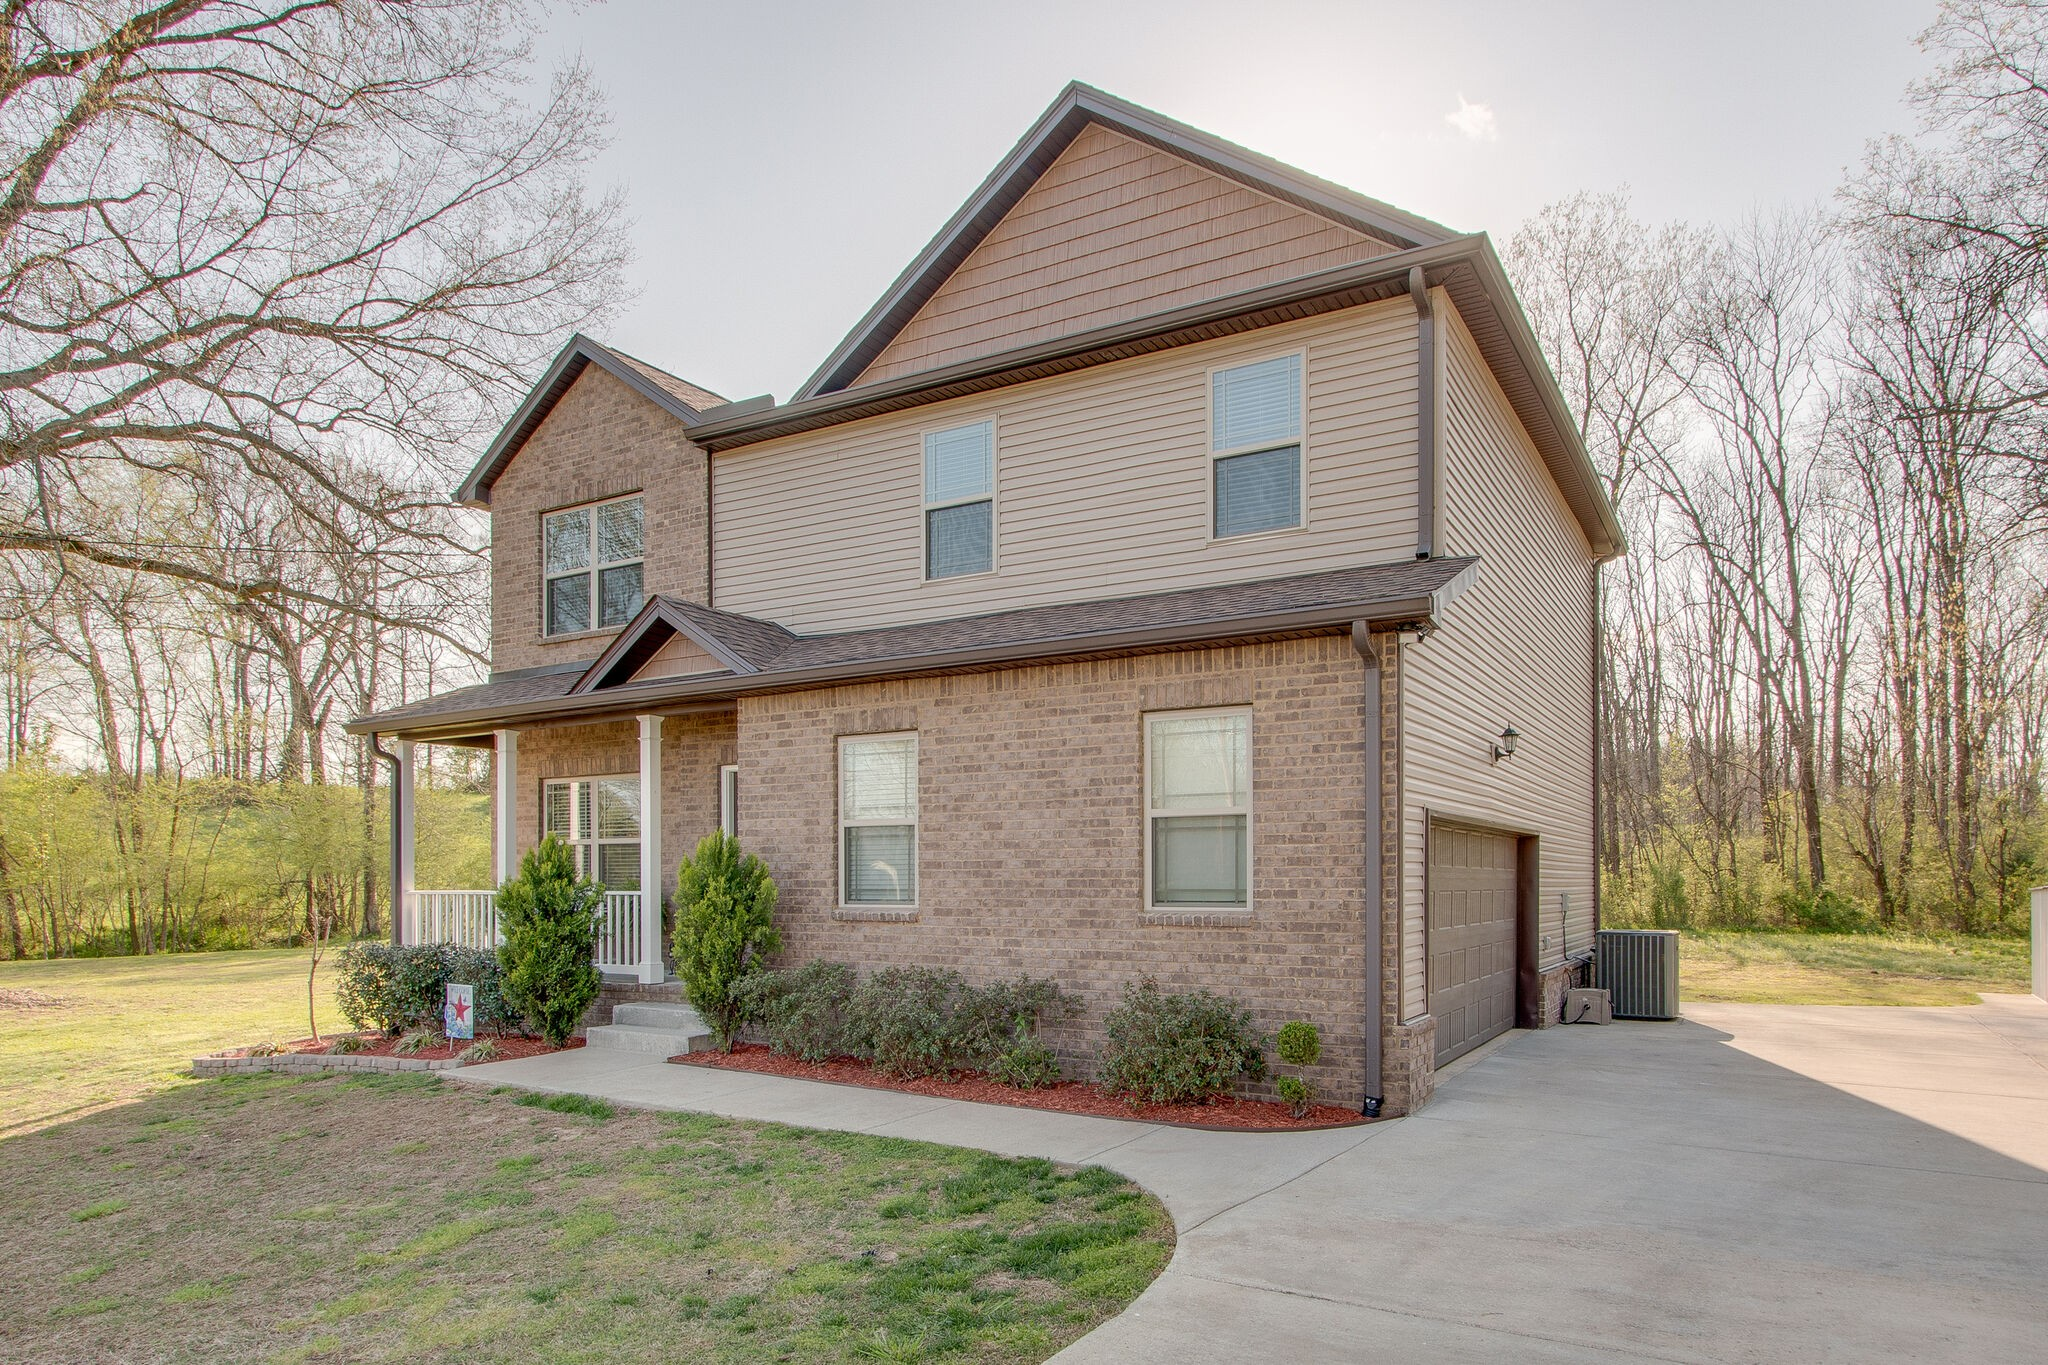 Wonderful 3 bedroom, 2 1/2 bath home with additional loft! Great location just 15 minutes from Columbia and .25 miles from Zion Academy. Granite counters, kitchen island and additional sunroom.